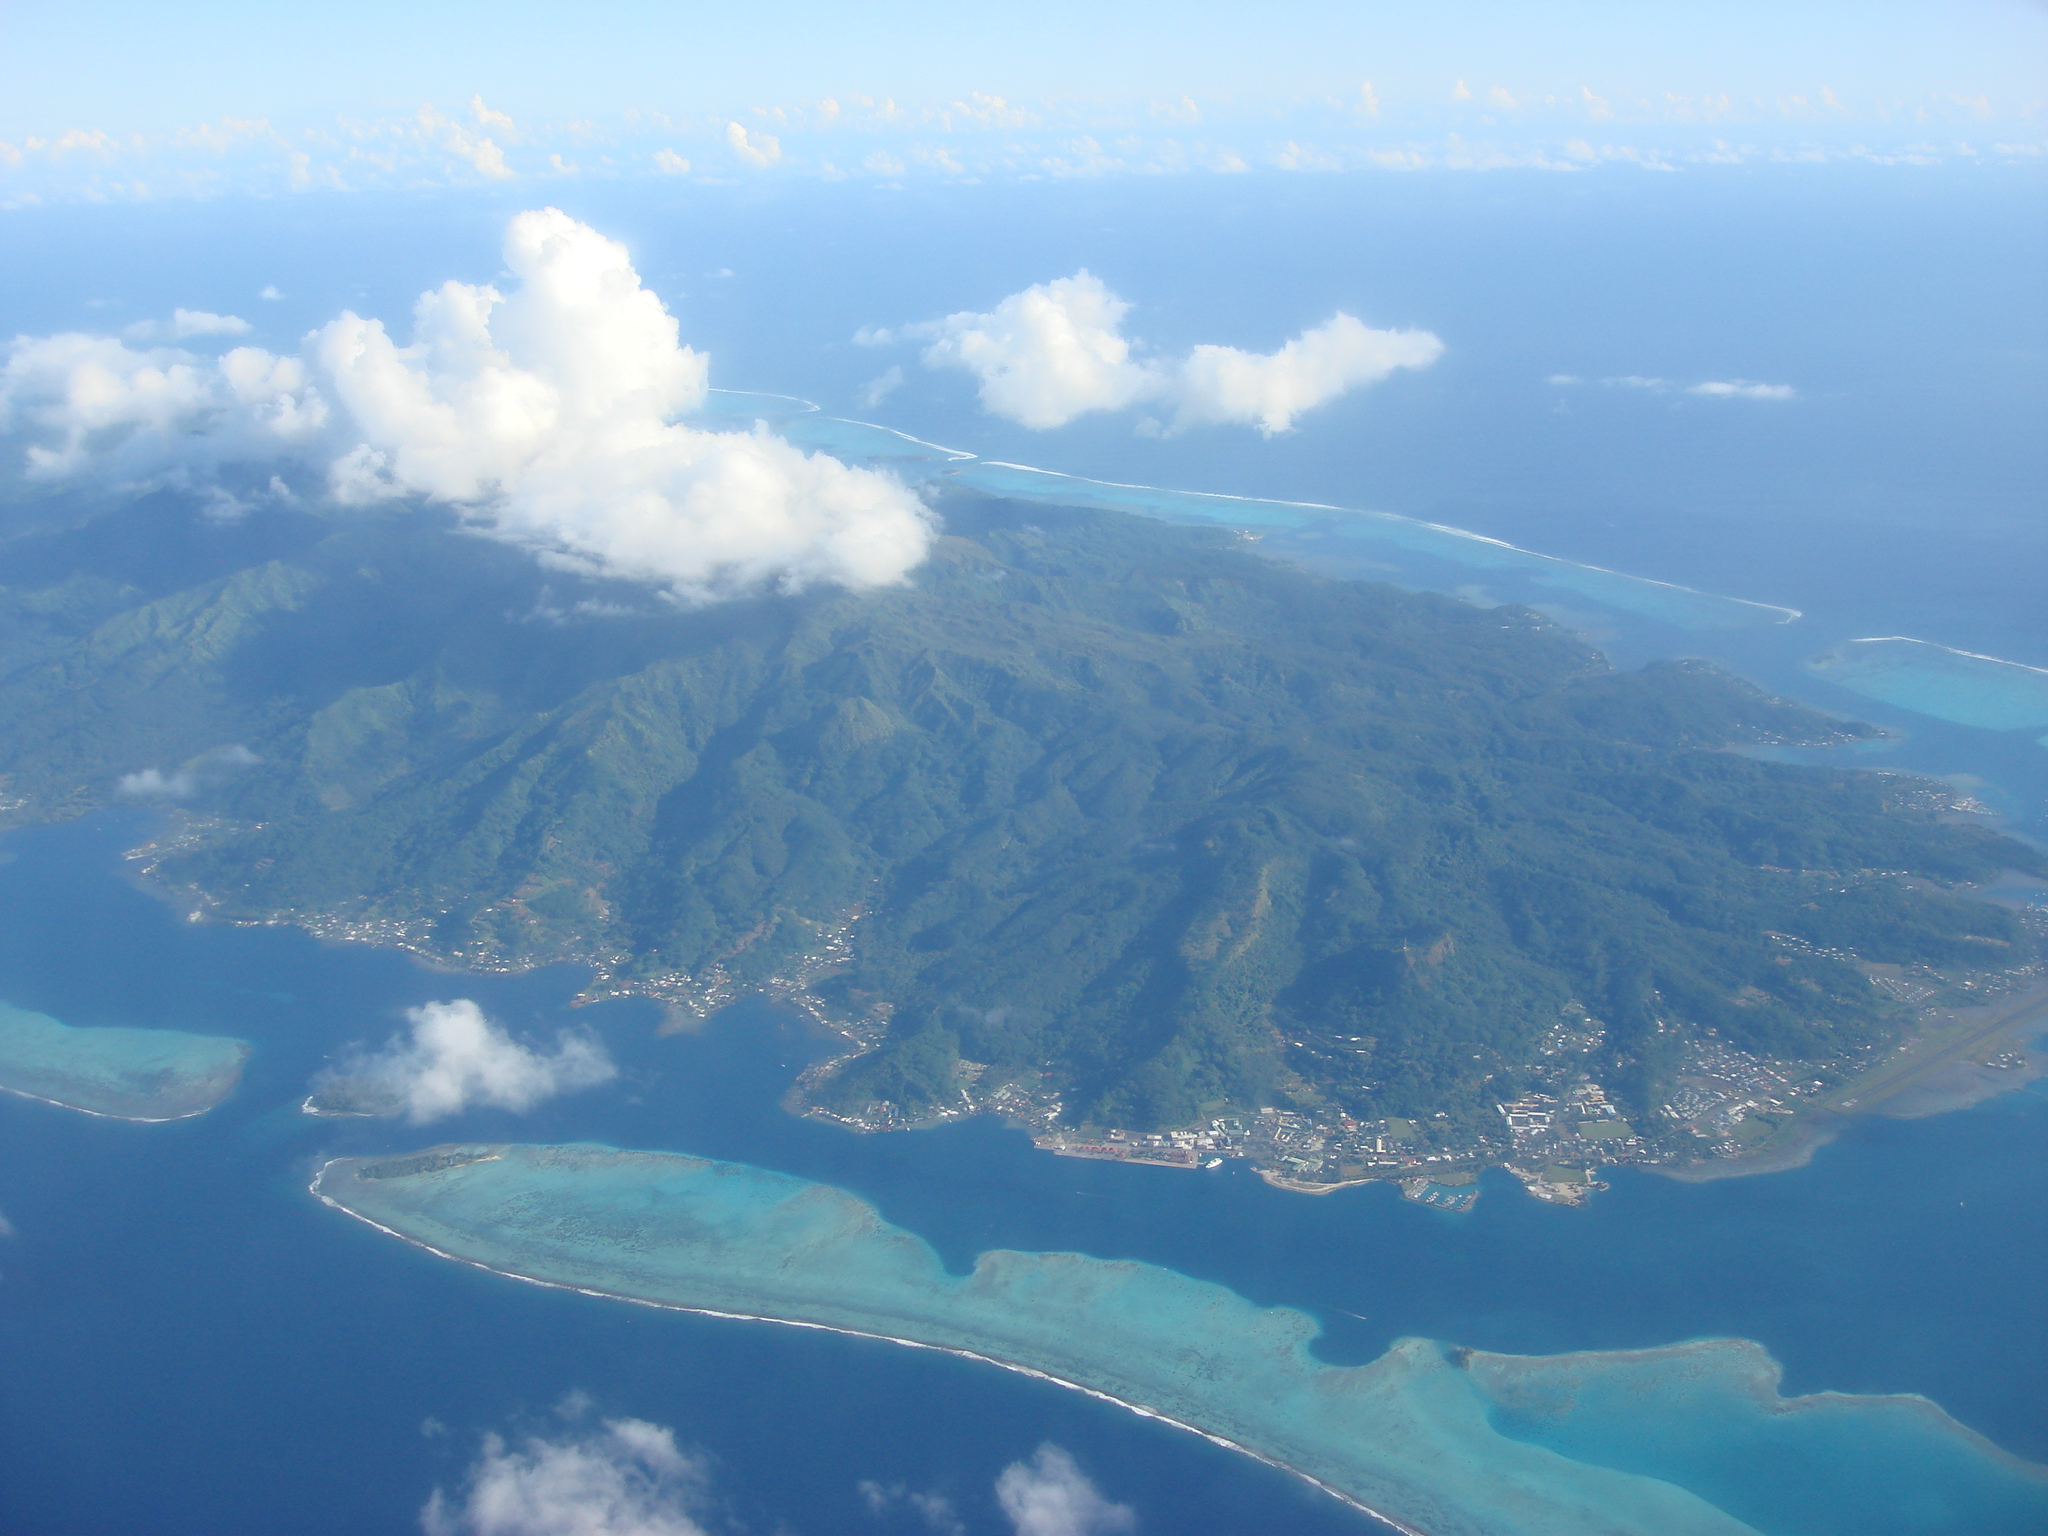 ☼ - Society Islands - ☼ 20090812105721%21A_view_from_the_AR_72_airplane_%28Over_Society_Islands_-_French_Polynesia%29